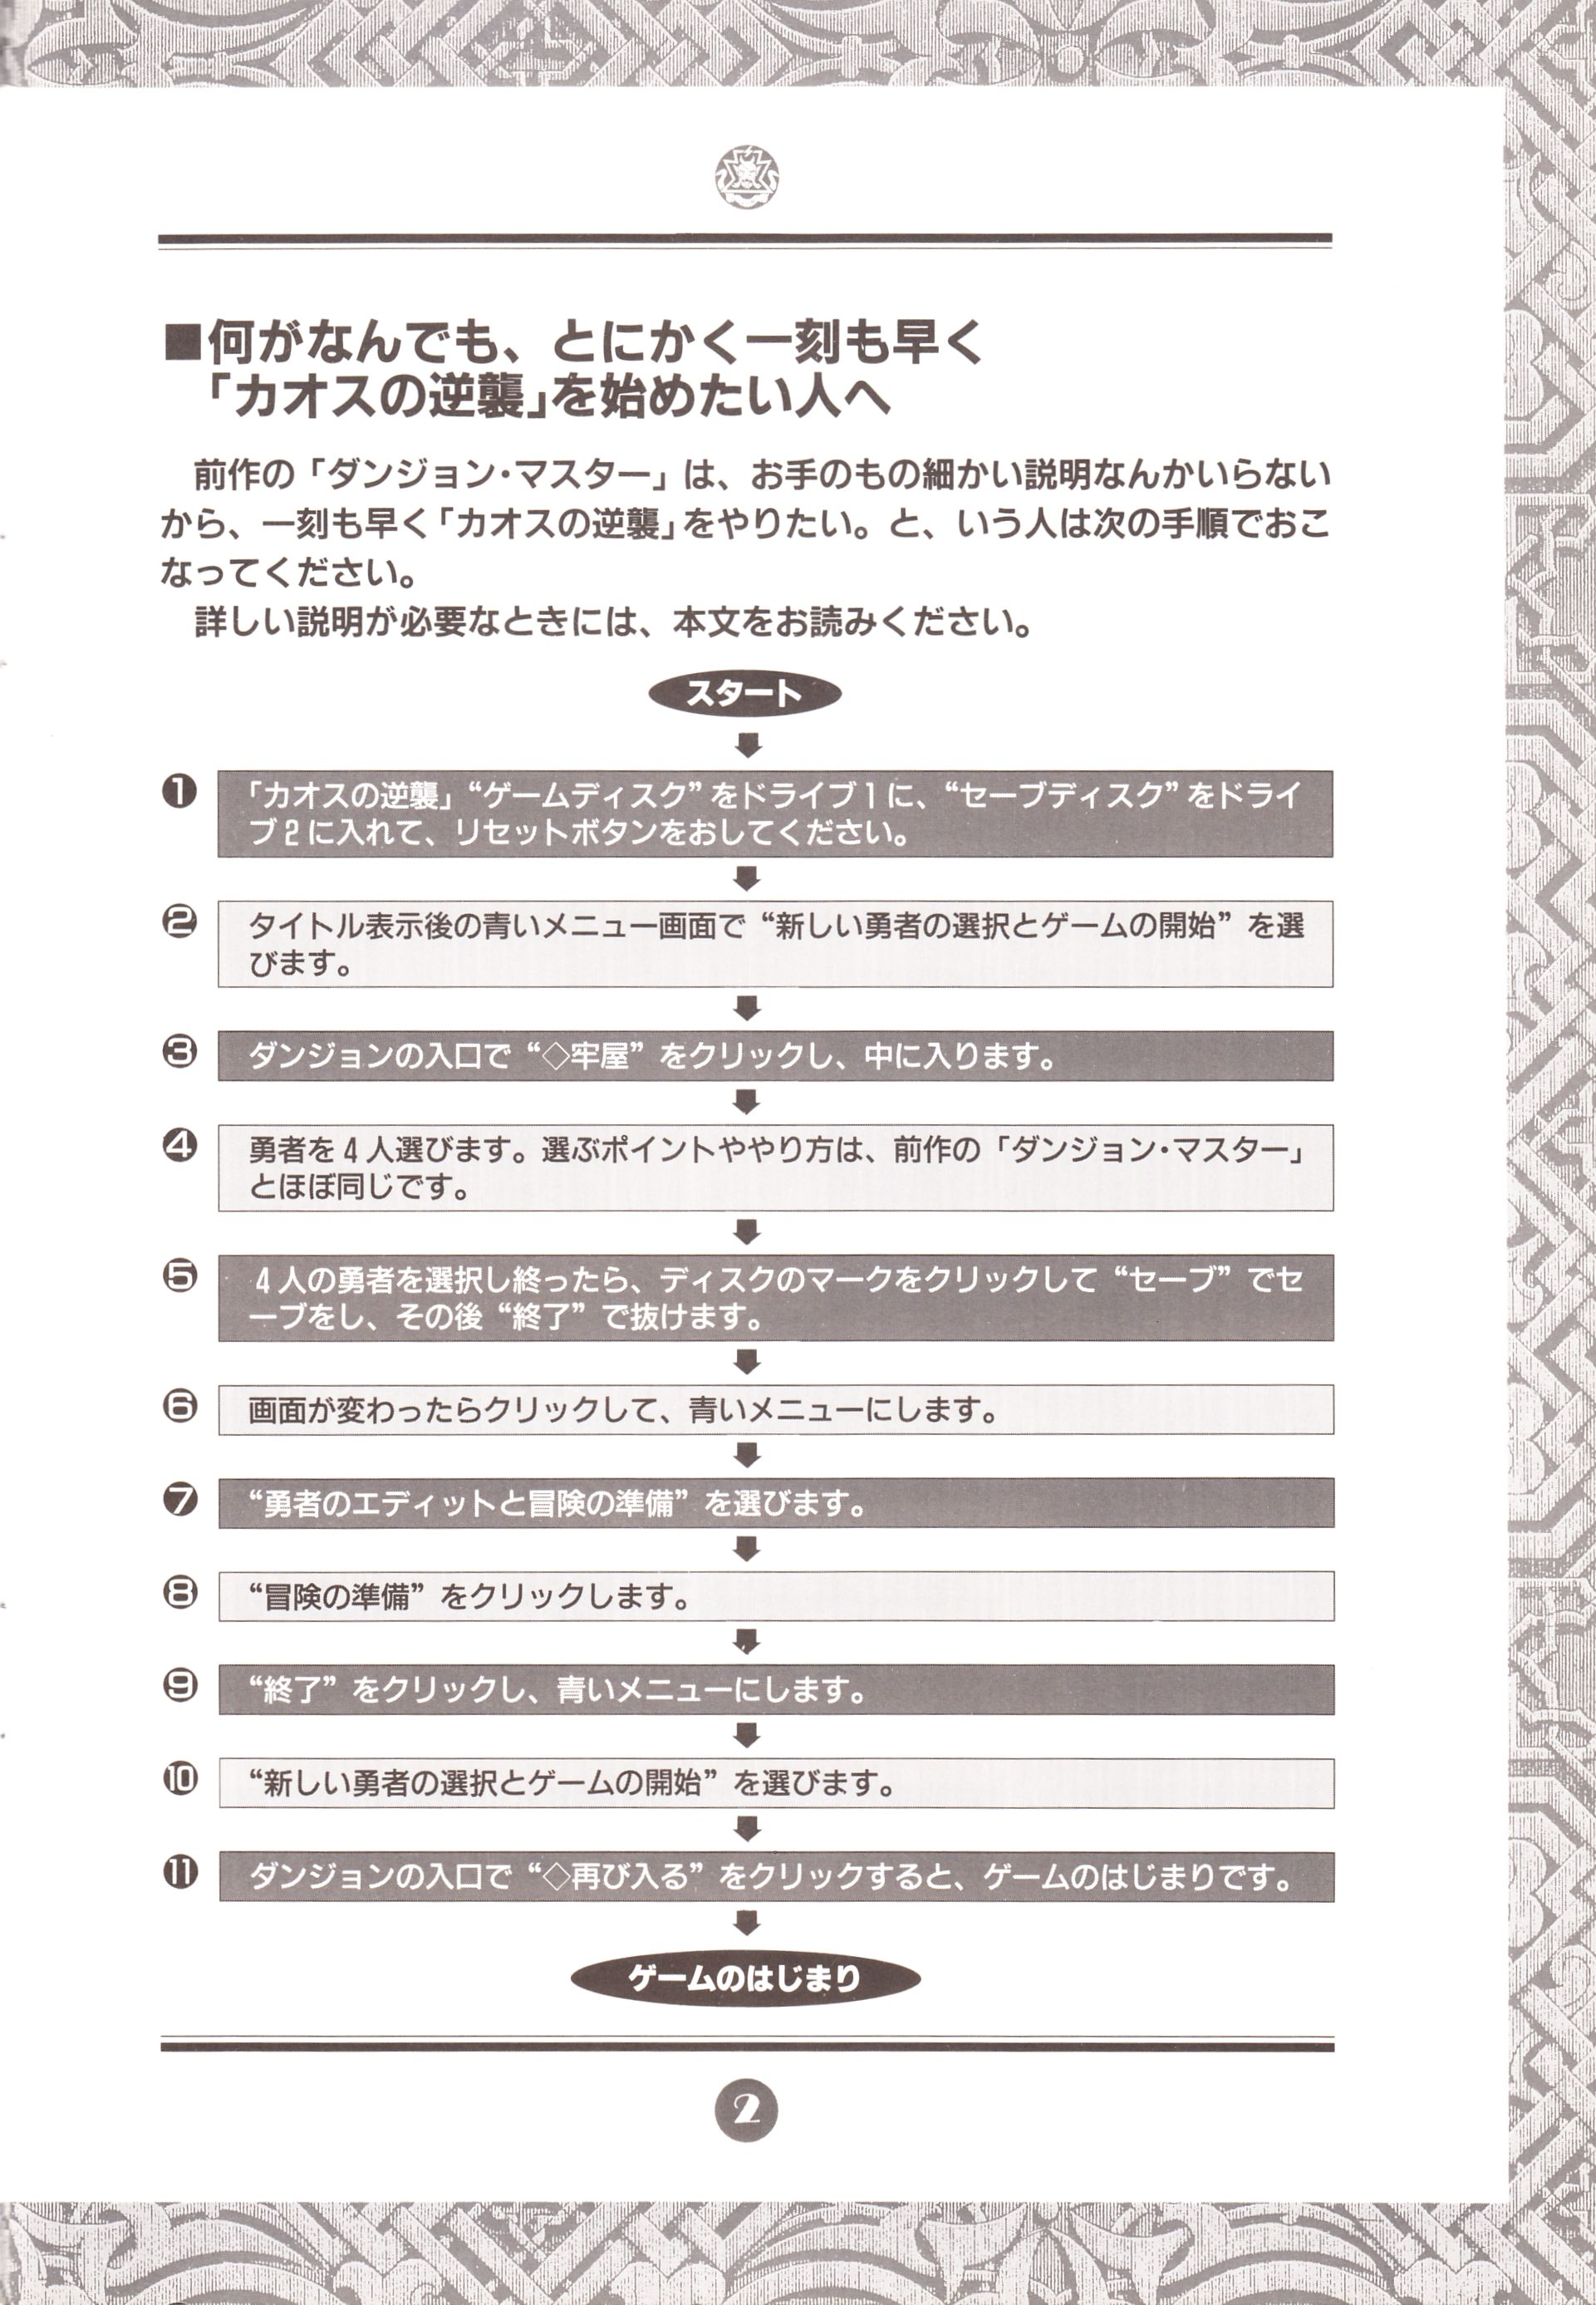 Game - Chaos Strikes Back - JP - PC-9801 - 3-5-inch - An Operation Manual - Page 005 - Scan